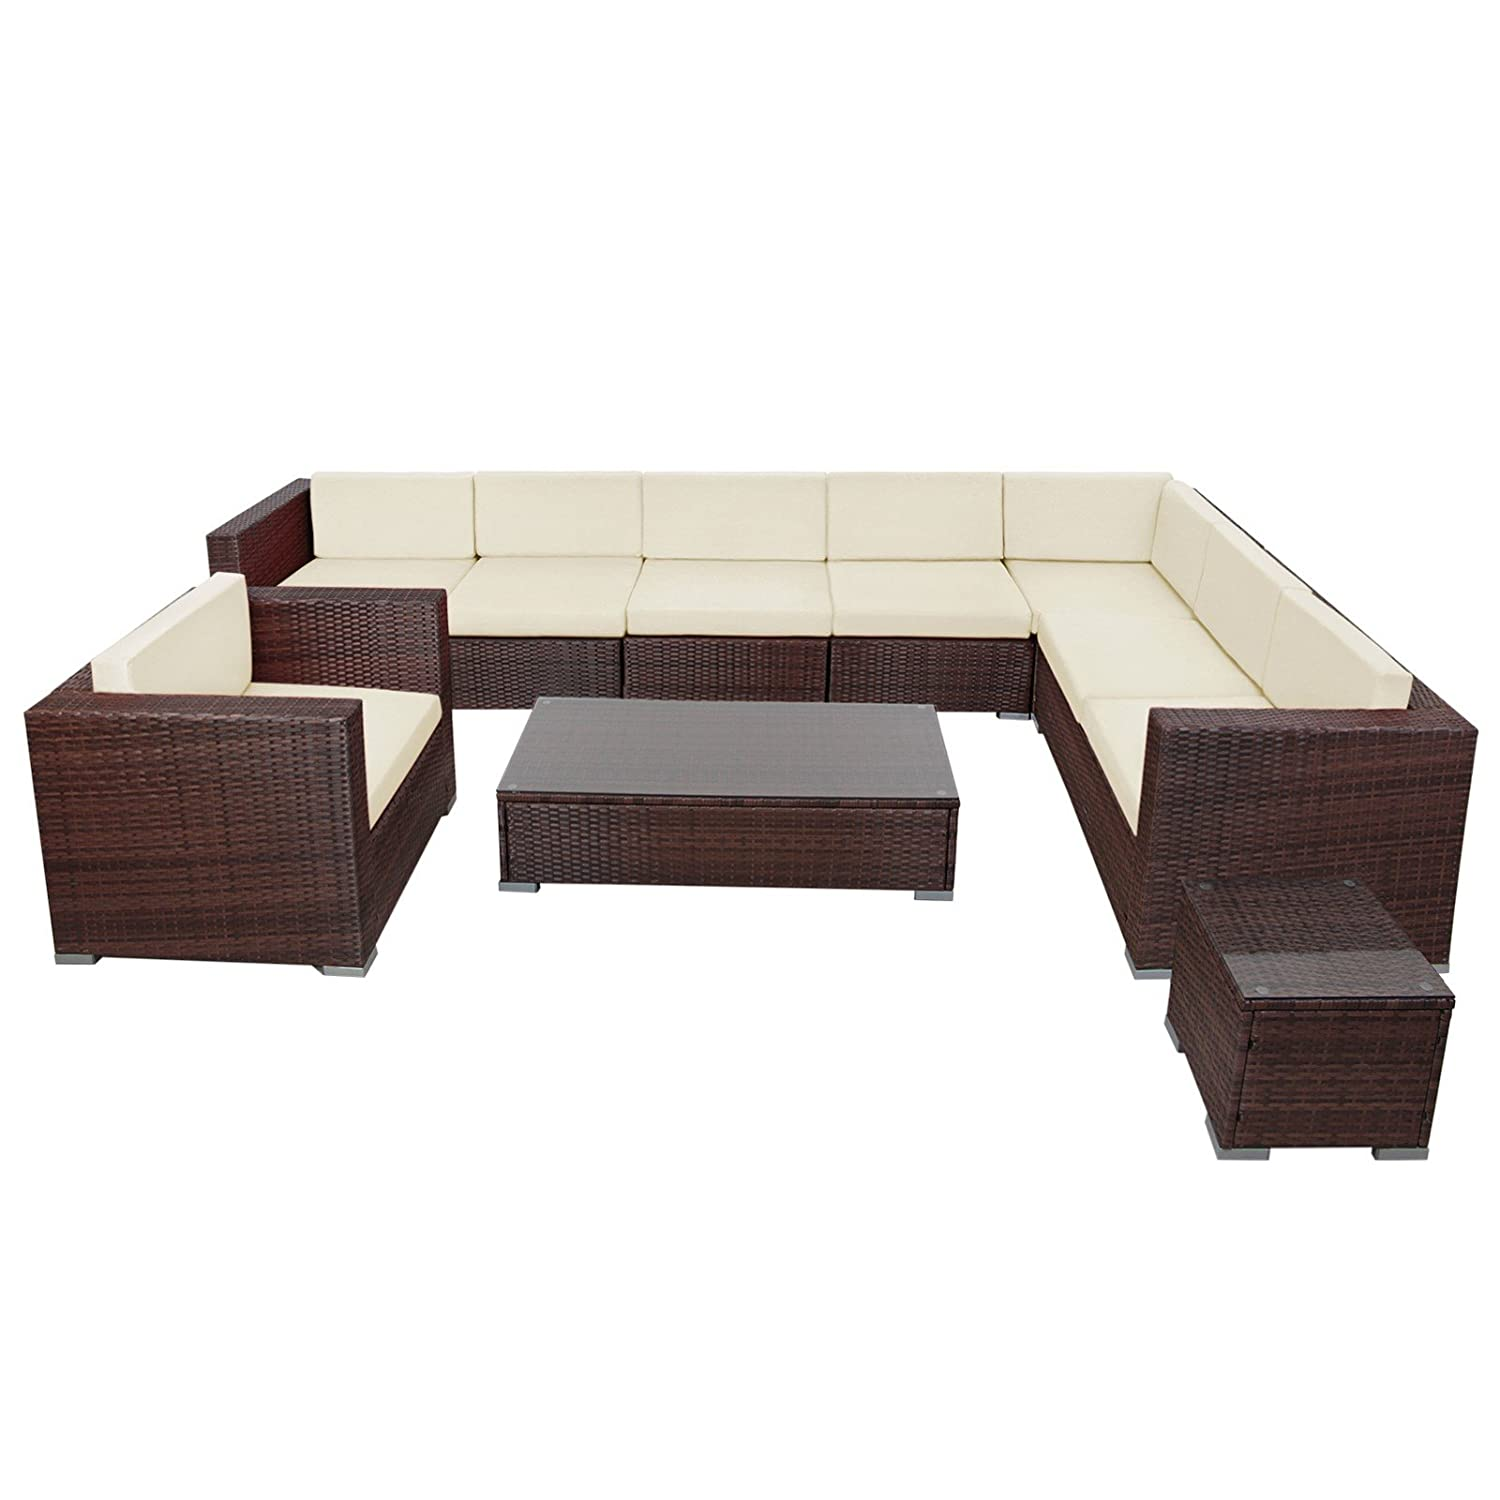 25 teilige poly rattan lounge sitzgruppe havanna. Black Bedroom Furniture Sets. Home Design Ideas